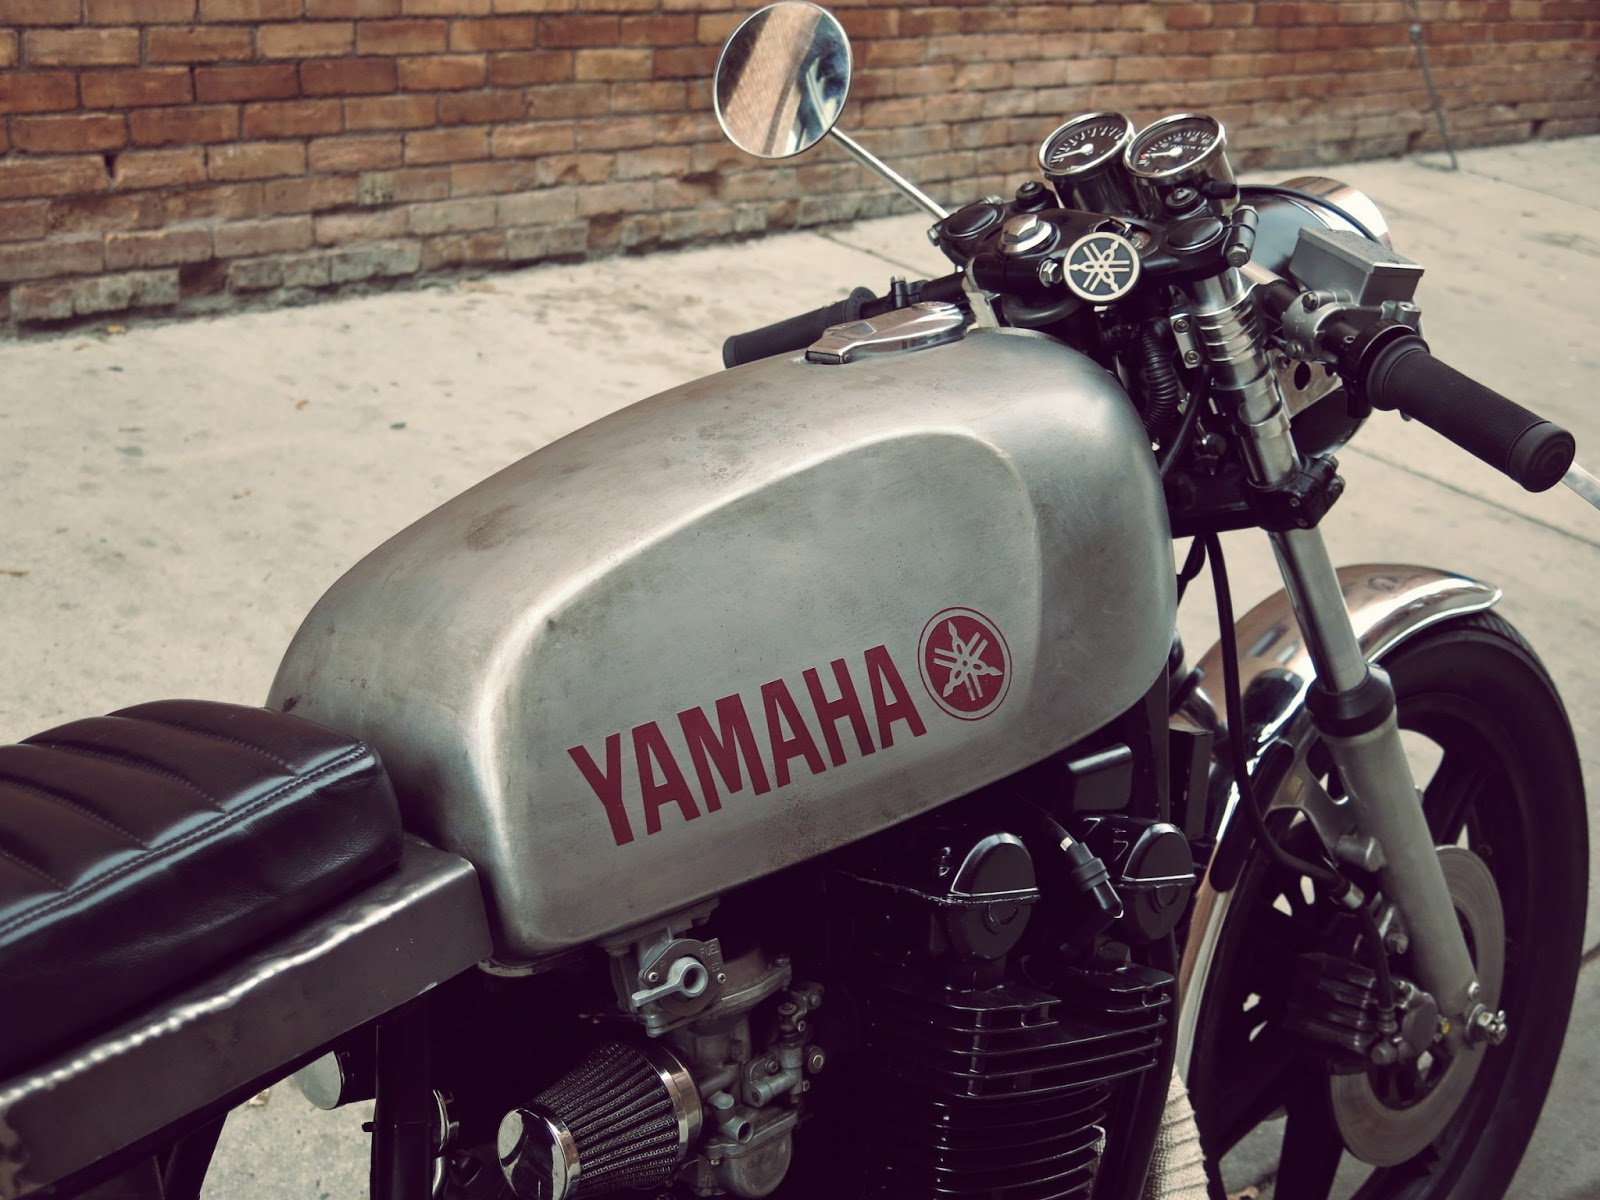 06%2BYamaha%2BXS750%2B1977%2BBy%2BNumber%2B8%2BWire%2BMotorcycles%2BHell%2BKustom 1976 xs750 2d wiring diagram xs650 wiring diagram, fj1100 wiring 1975 xs650 wiring diagram at aneh.co